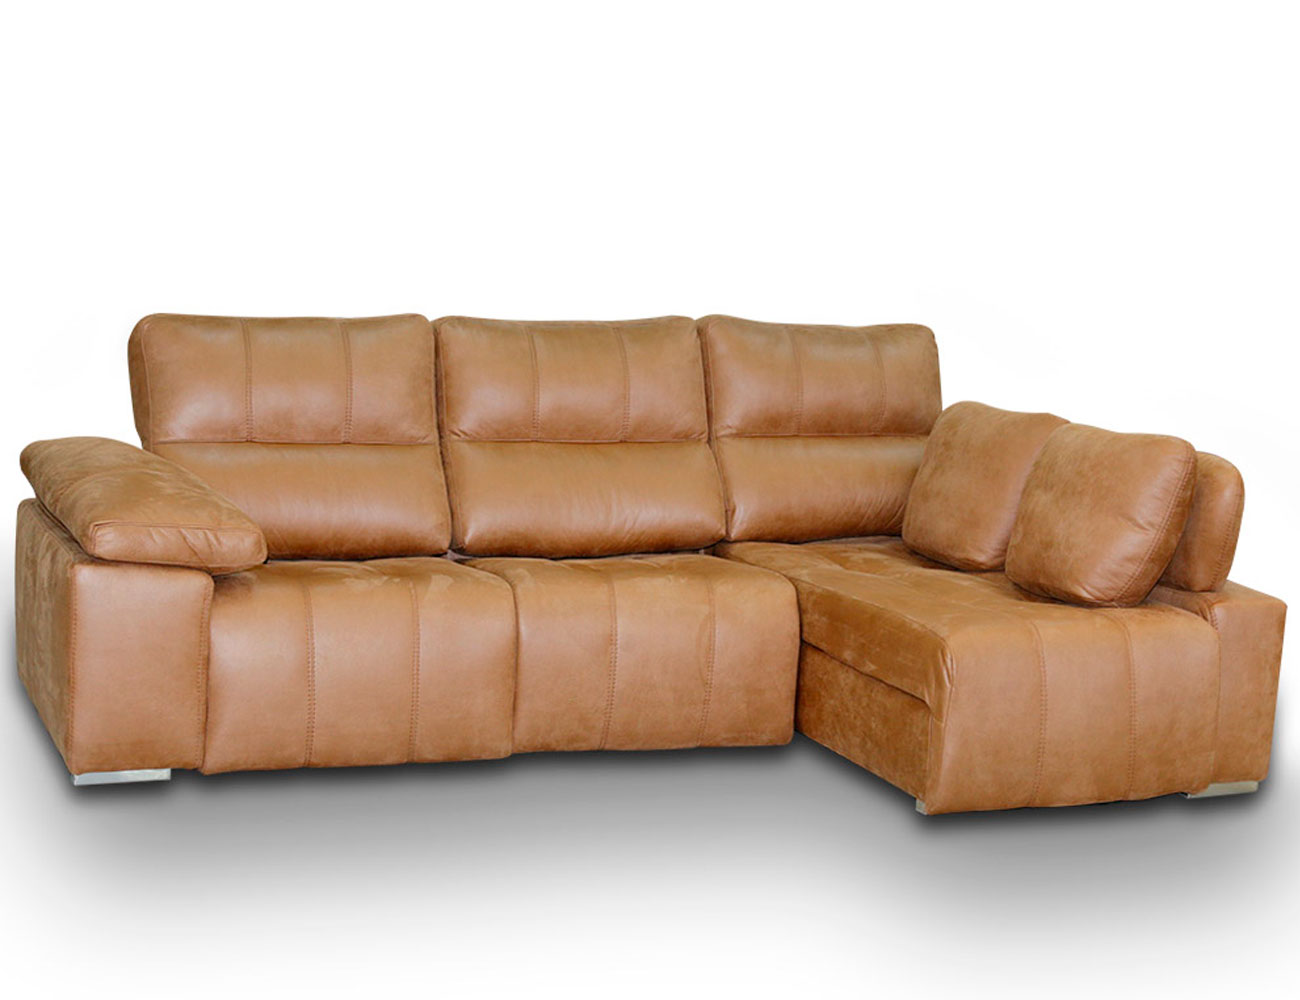 Sofa chaiselongue relax 2 motores anti manchas13